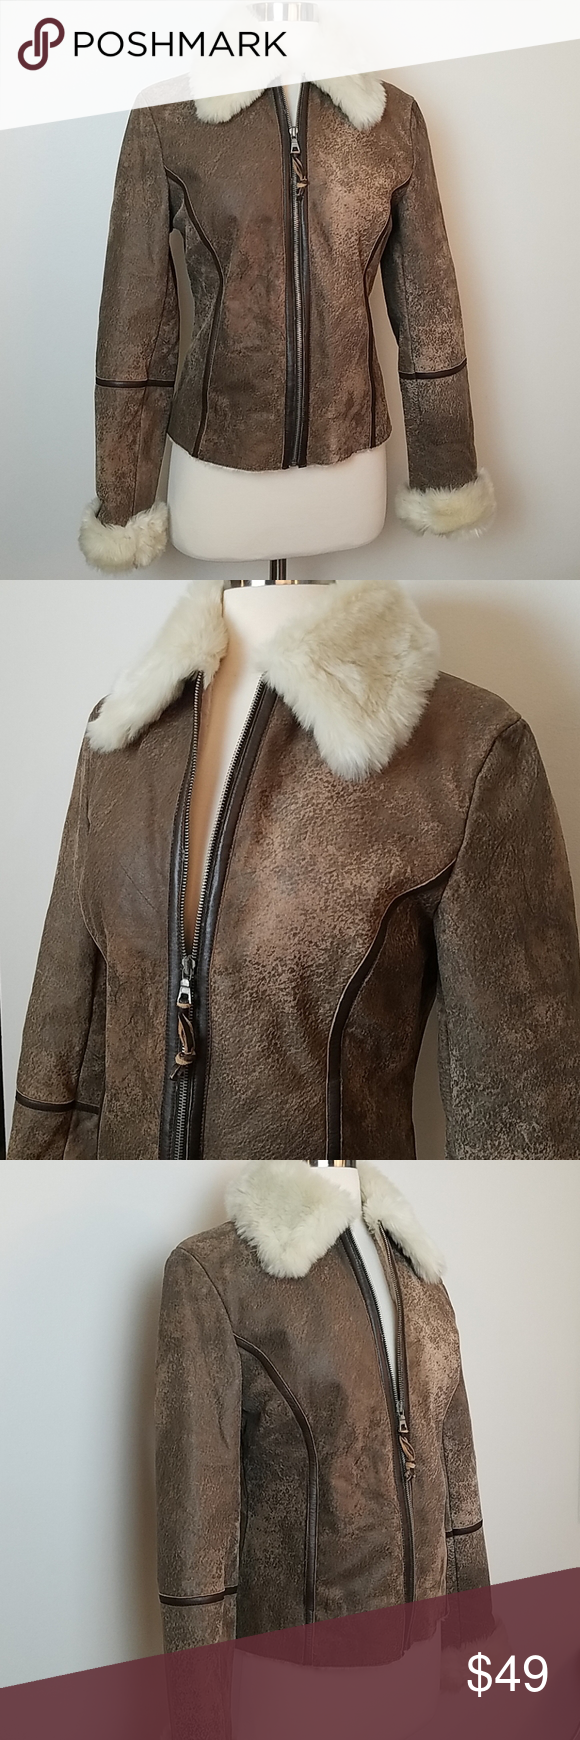 Express leather jacket with faux fur/shearling in 2020